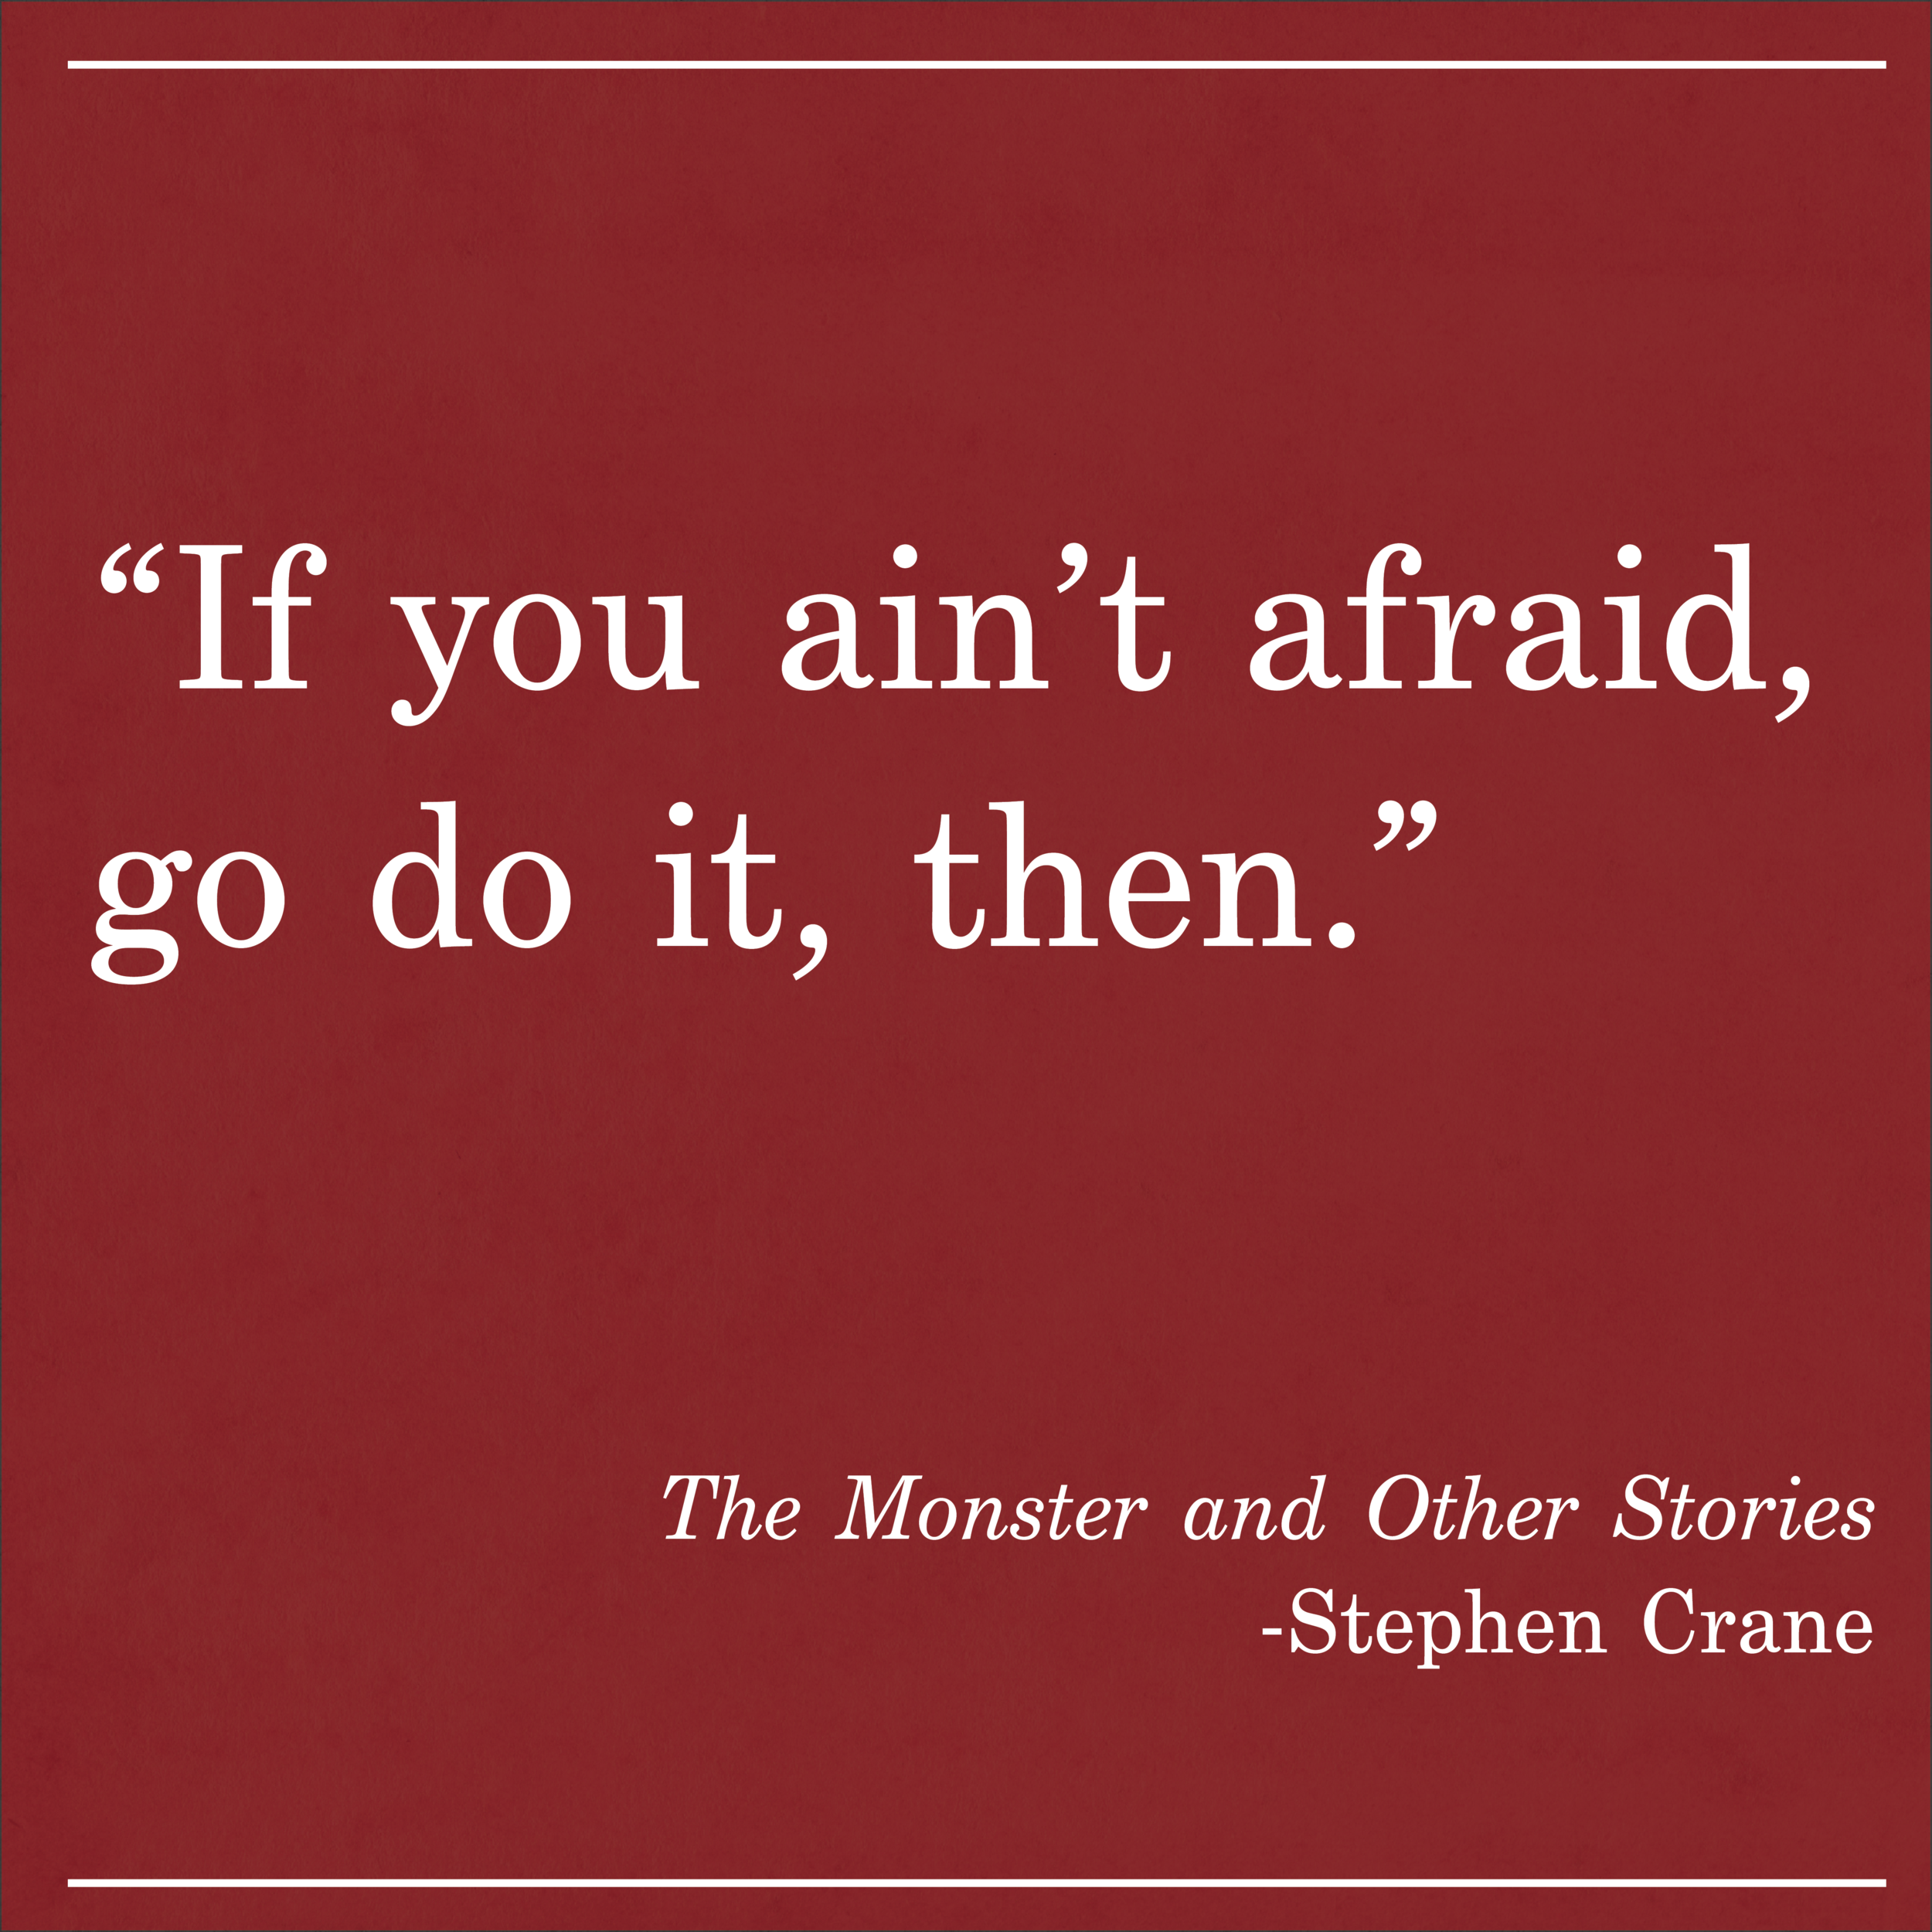 Daily Quote The Monster by Stephen Crane